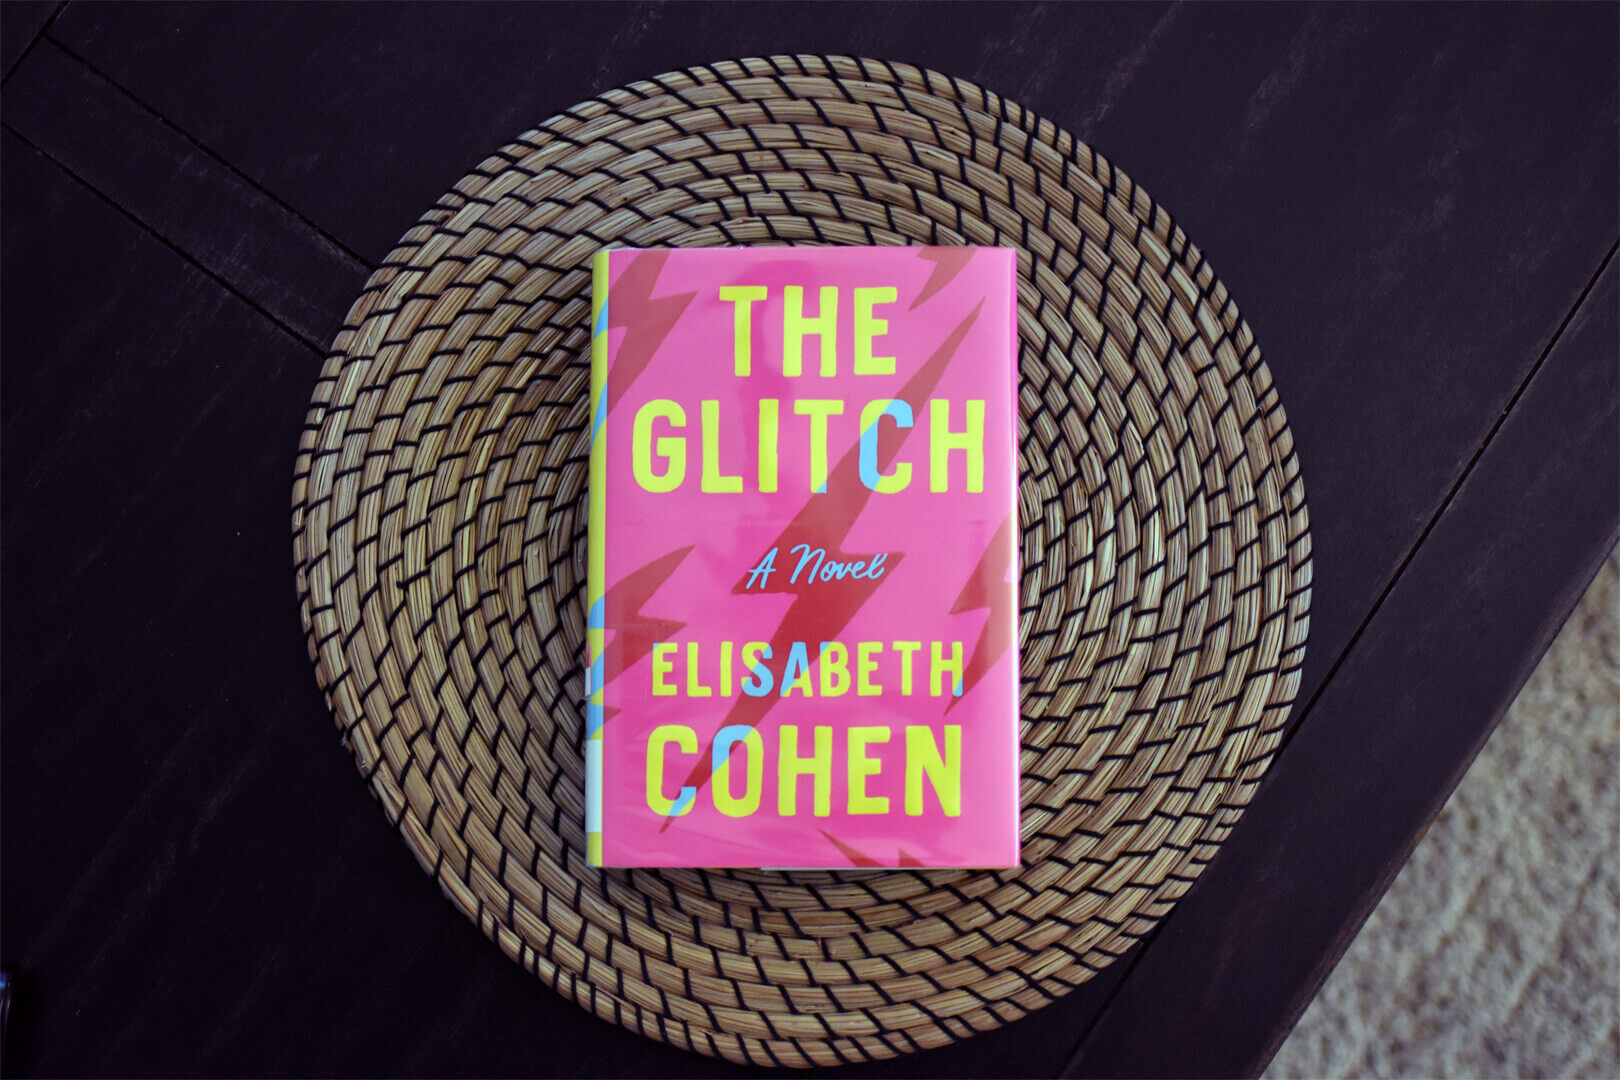 The Glitch Review - Book Club Chat